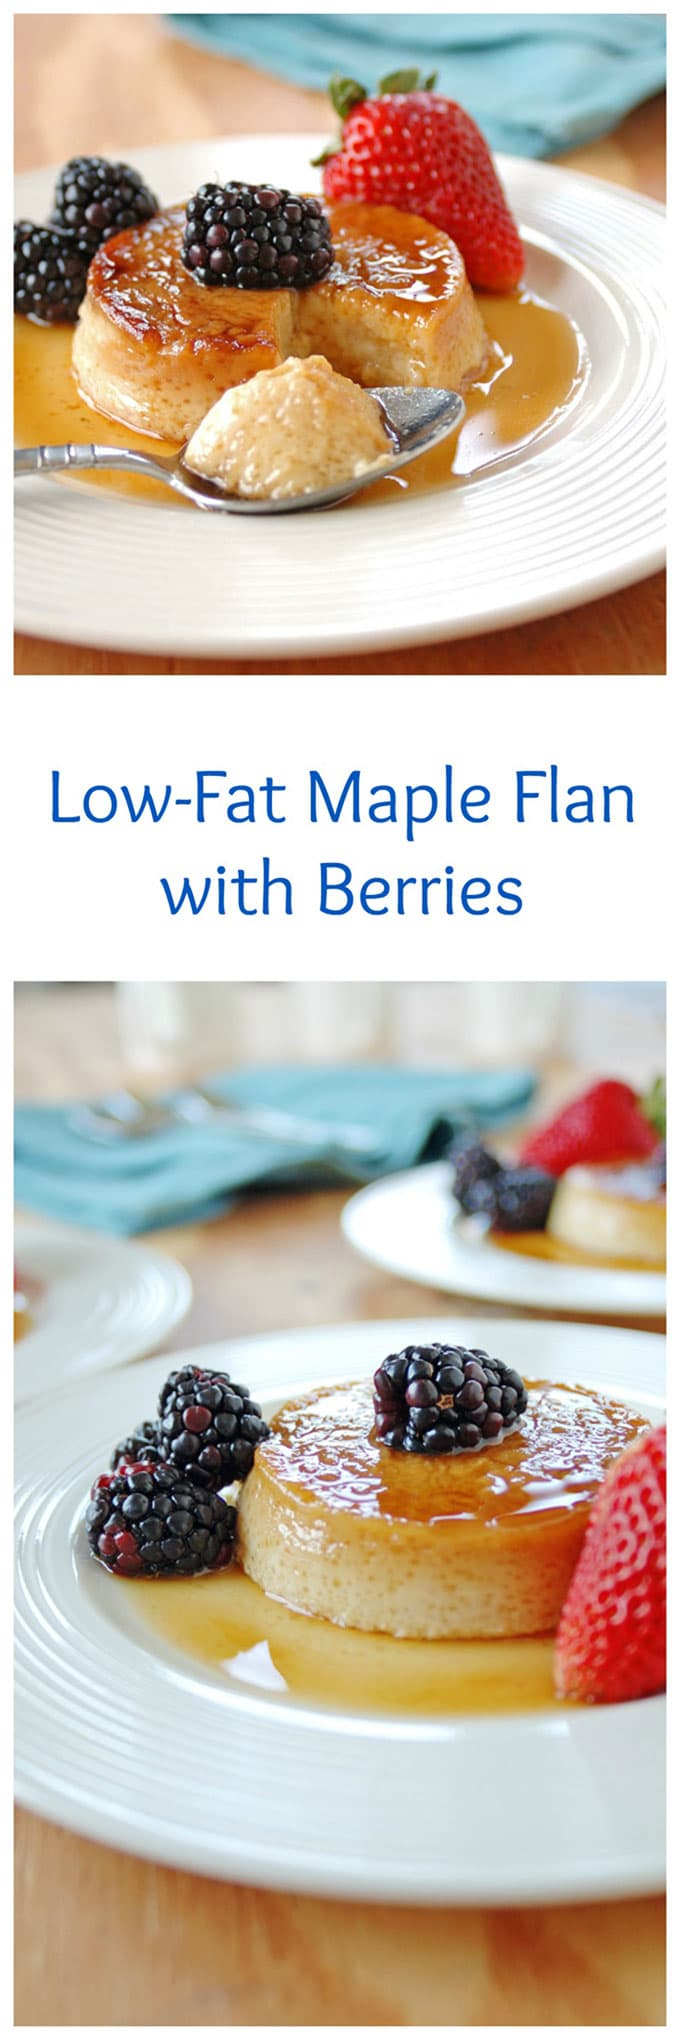 Low-Fat Maple Flan with Berries is one of my favorite desserts! Made with 2% milk and pure maple syrup instead of refined sugar.